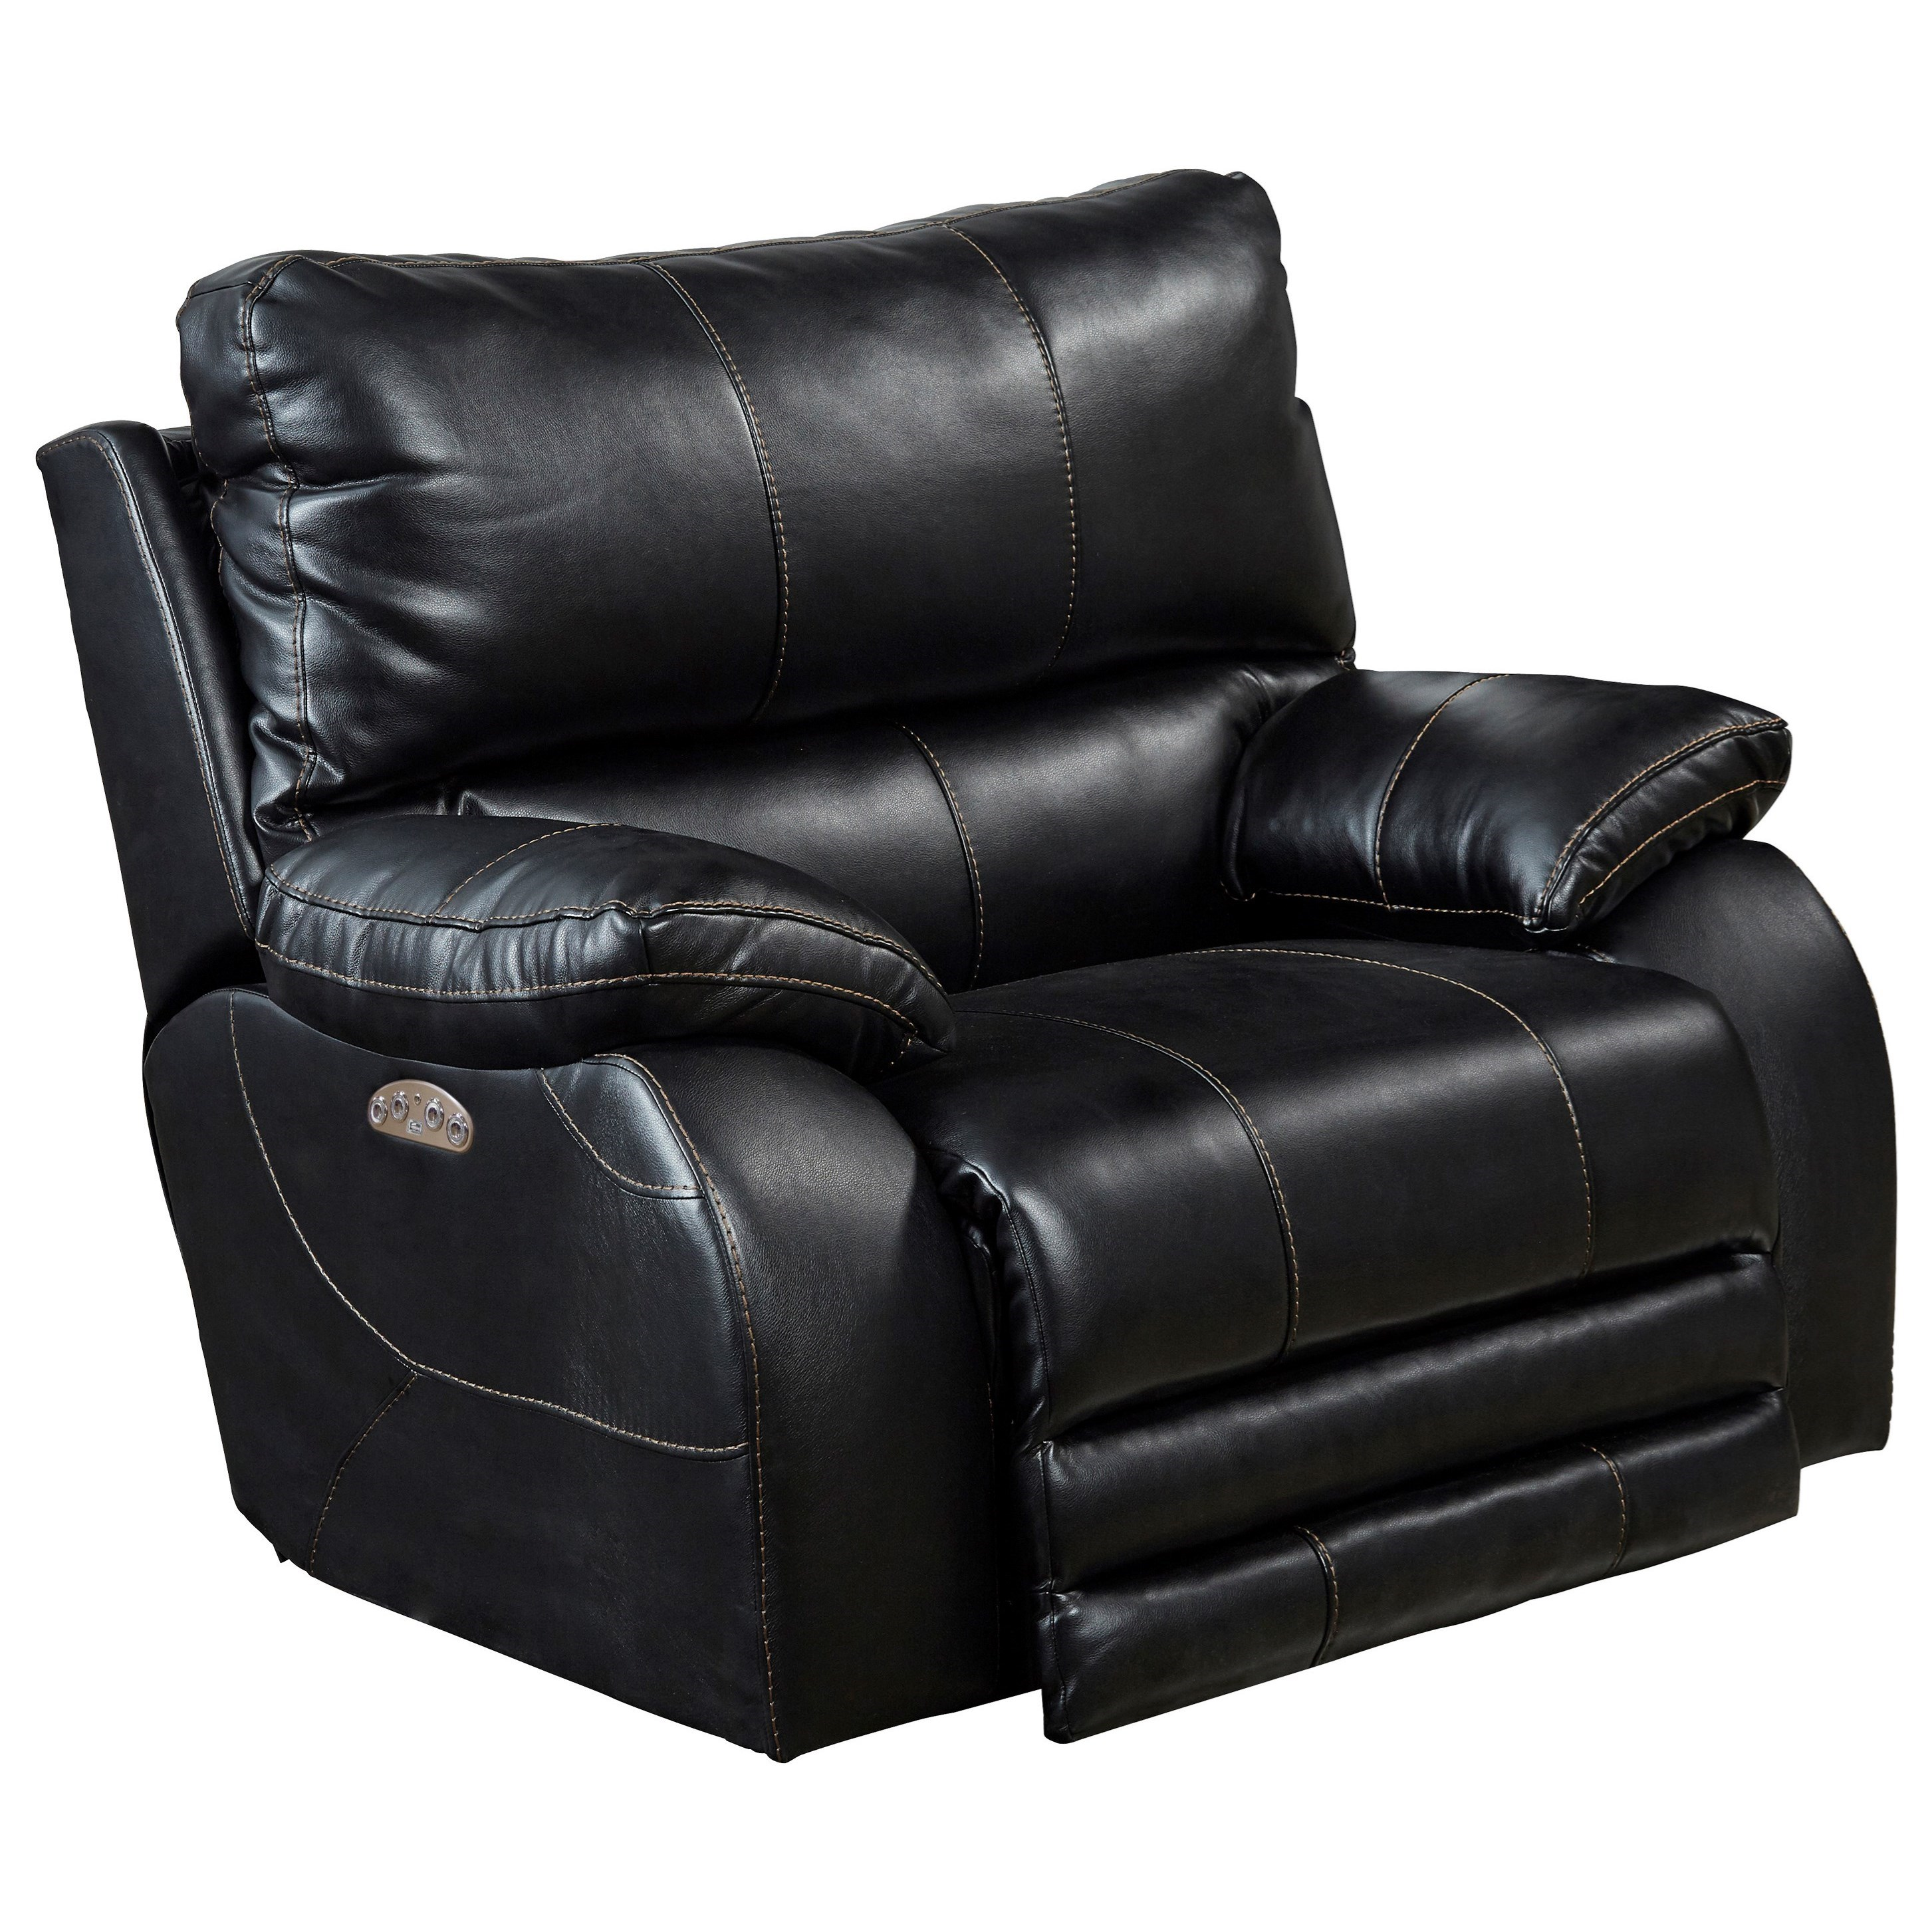 Reclining Collection Power Headrest Power Lay Flat Recliner by Catnapper at Pedigo Furniture